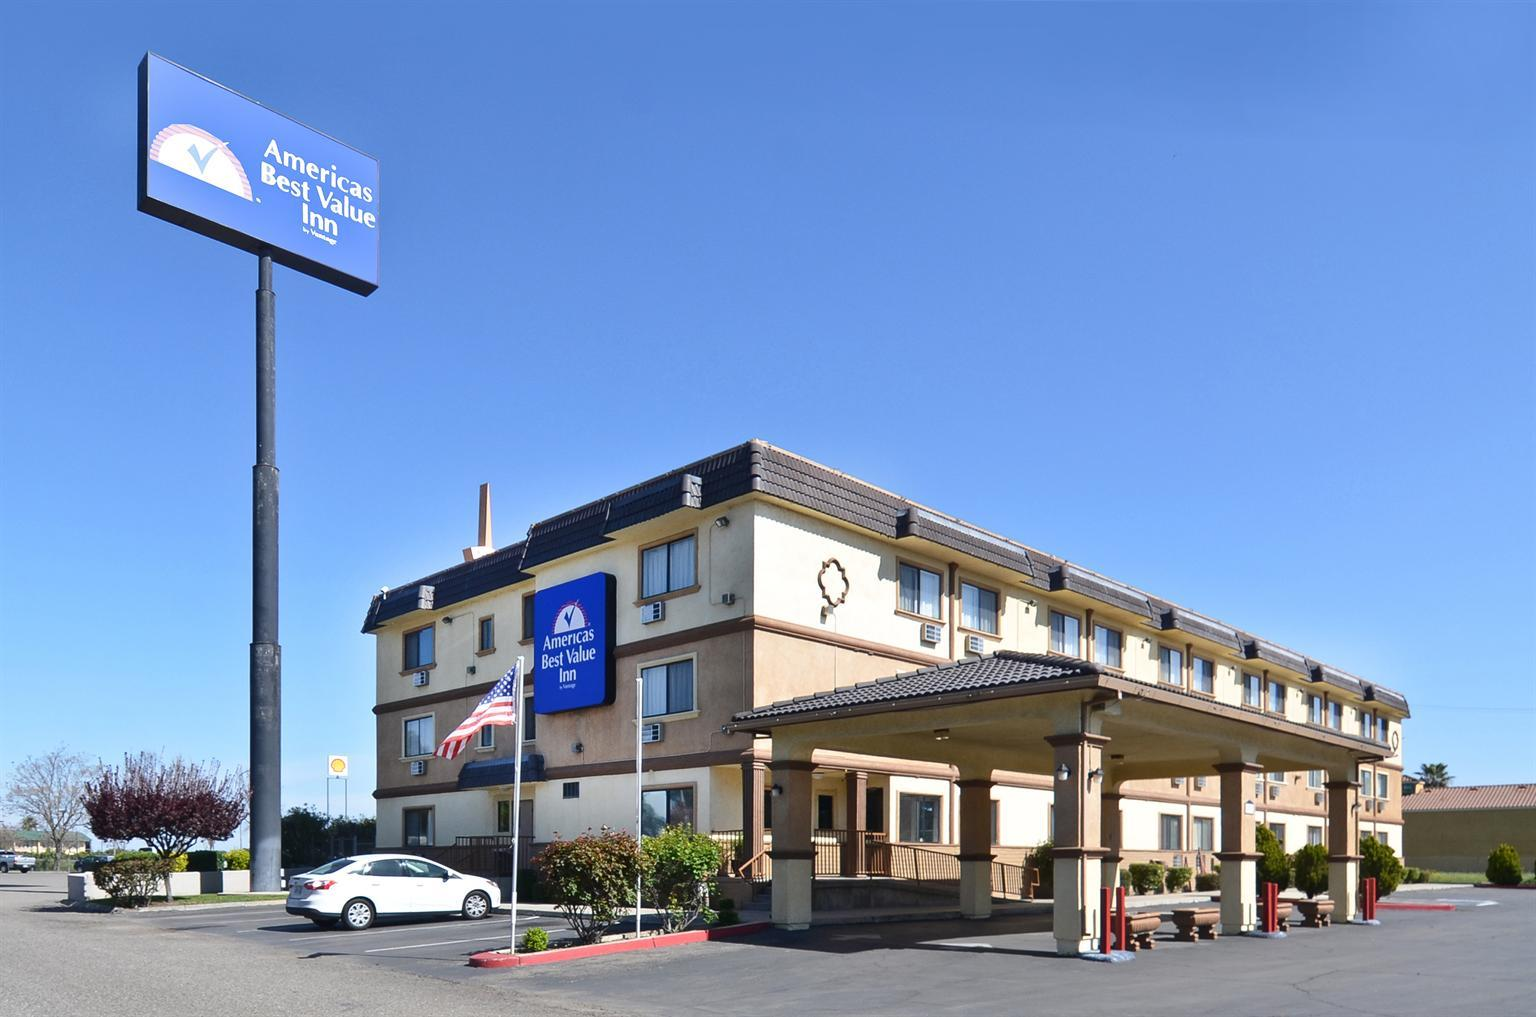 Hotels In Stockton Ca Near I